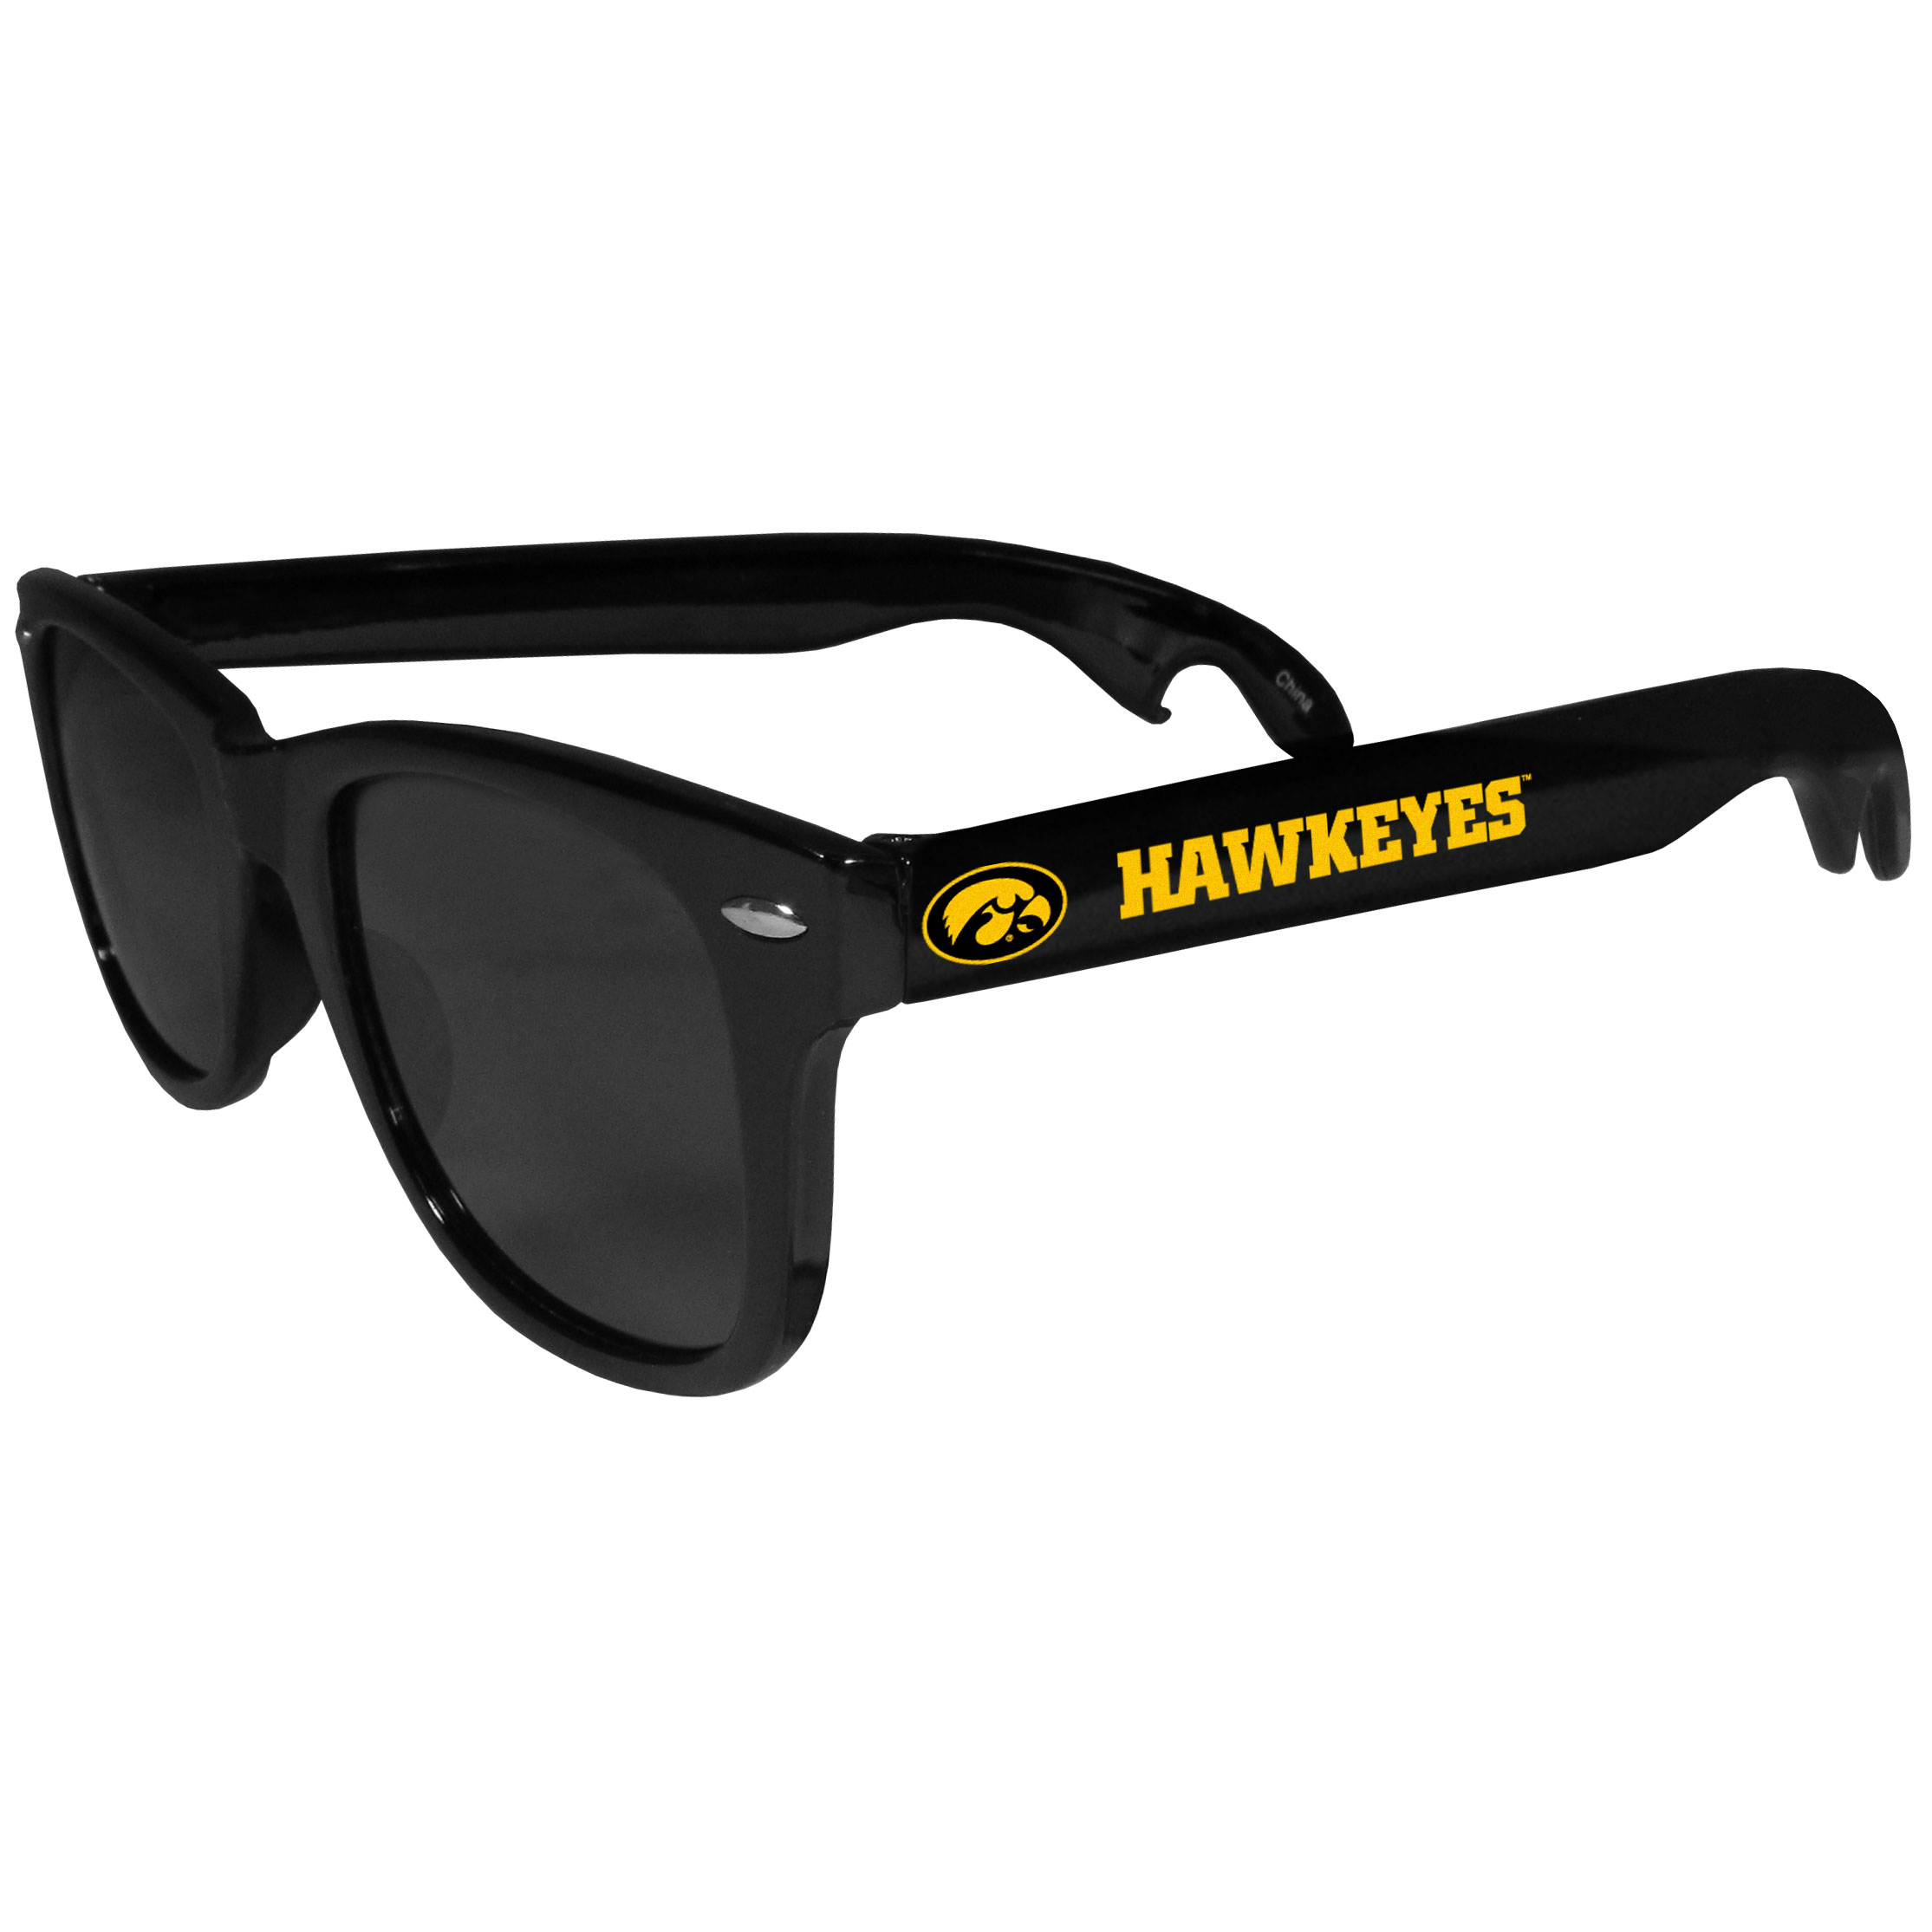 Iowa Hawkeyes Beachfarer Bottle Opener Sunglasses - Seriously, these sunglasses open bottles! Keep the party going with these amazing Iowa Hawkeyes bottle opener sunglasses. The stylish retro frames feature team designs on the arms and functional bottle openers on the end of the arms. Whether you are at the beach or having a backyard BBQ on game day, these shades will keep your eyes protected with 100% UVA/UVB protection and keep you hydrated with the handy bottle opener arms.